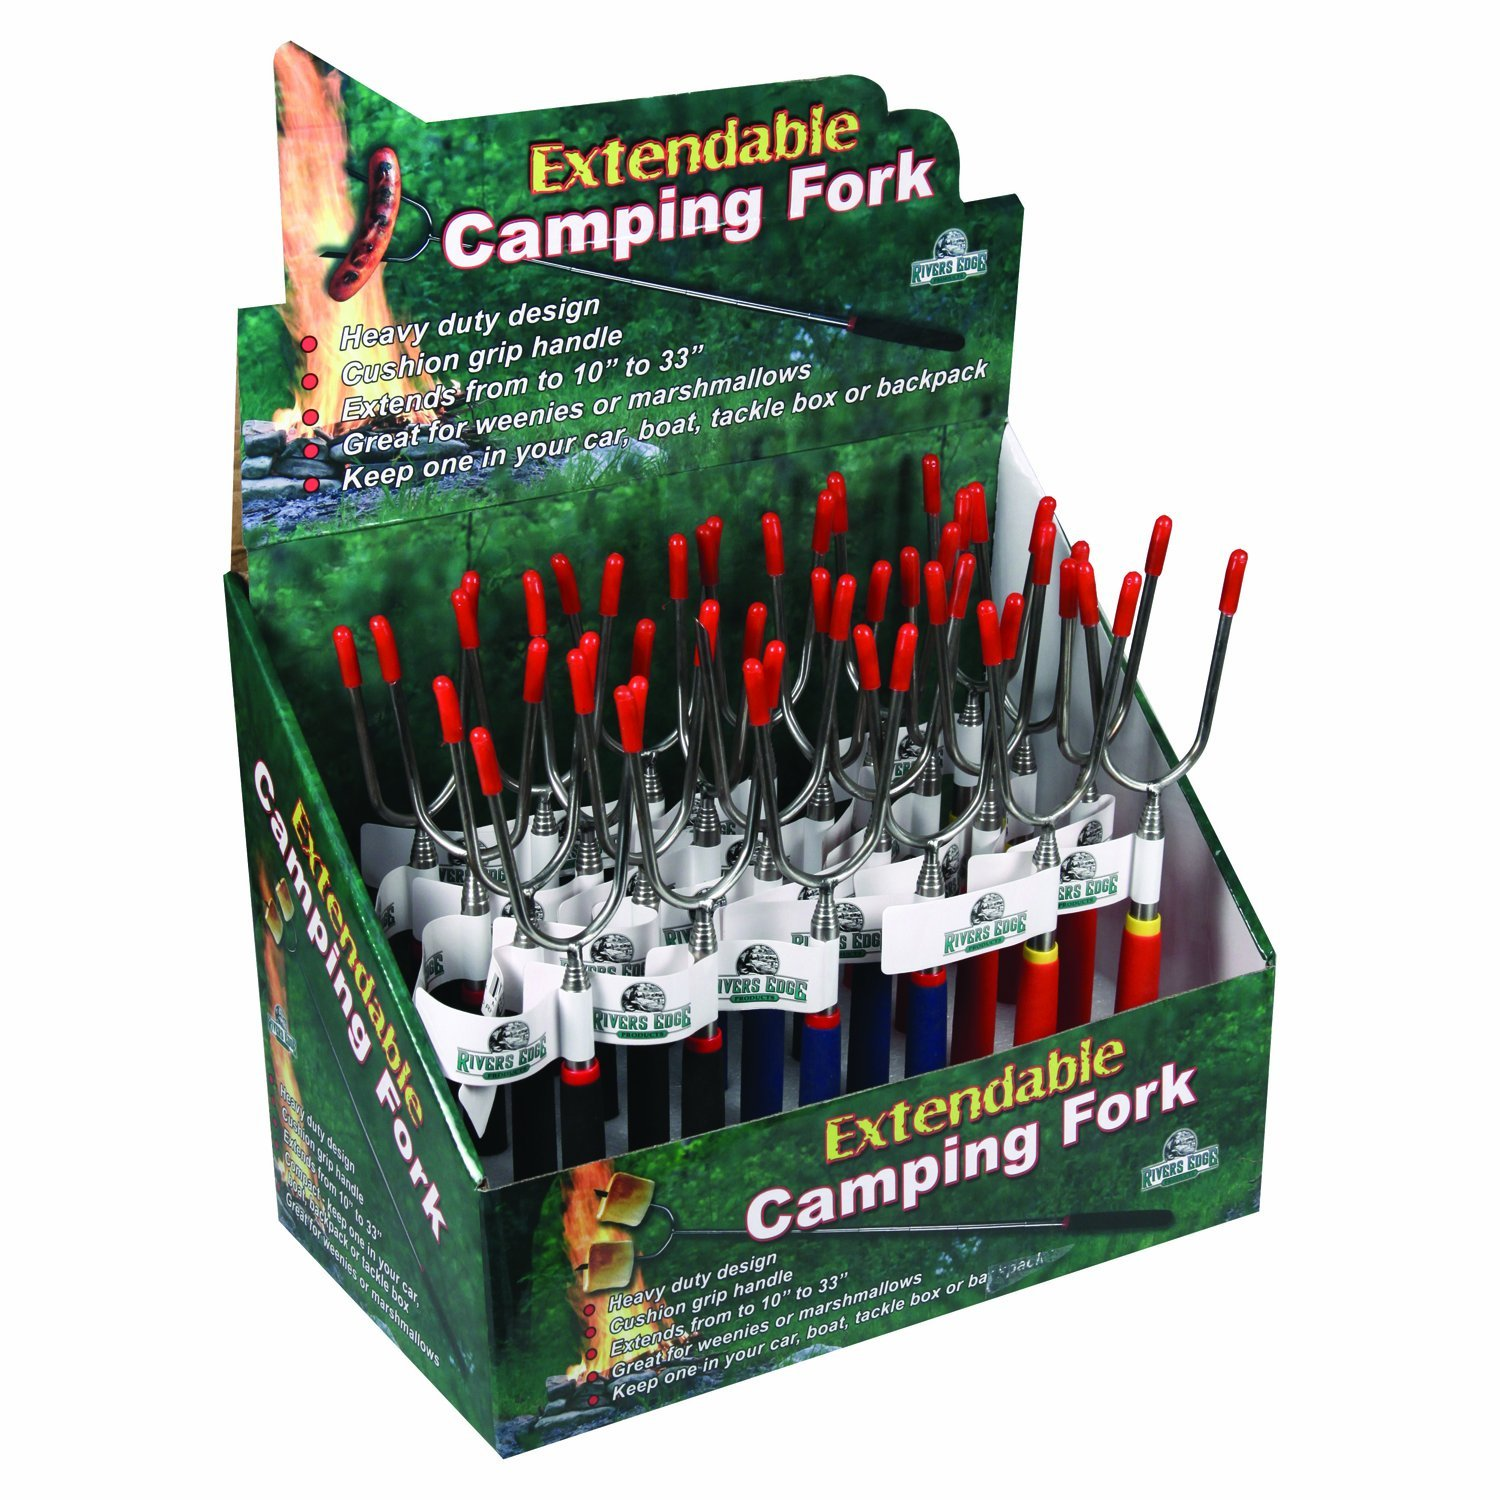 911 Rivers Edge Products Rep Marshmallow Roasting Forks Sportsman Supply Inc